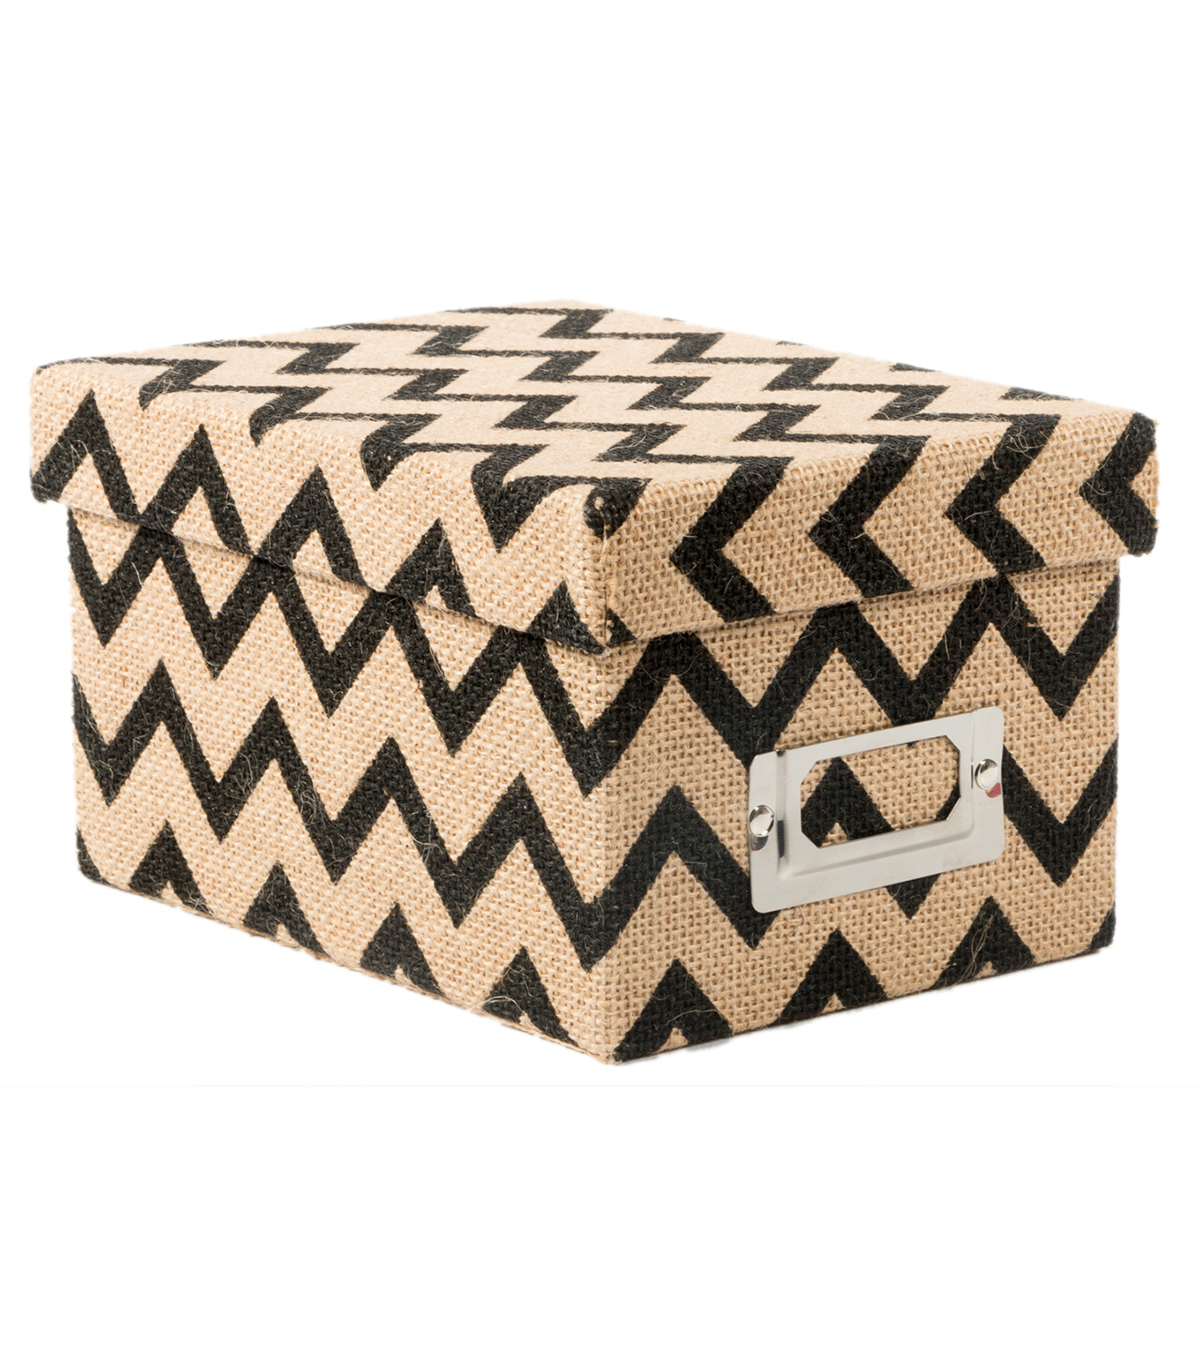 DCWV Mini Box: Burlap with black chevron